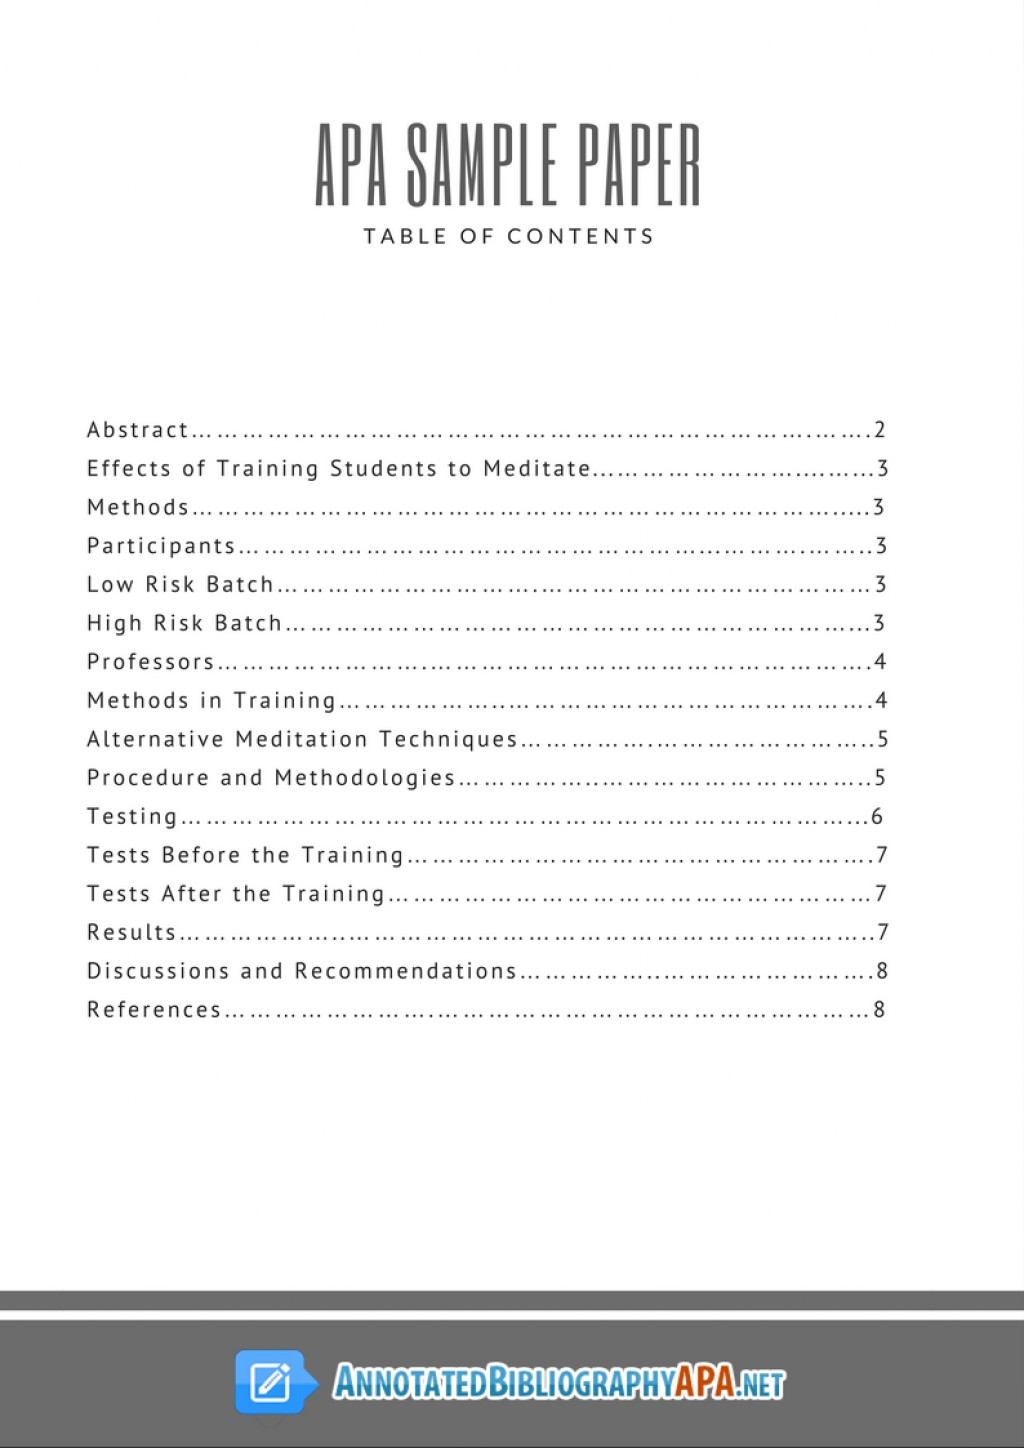 002 Apa Style Research Paper Example With Table Of Contents Stunning Large